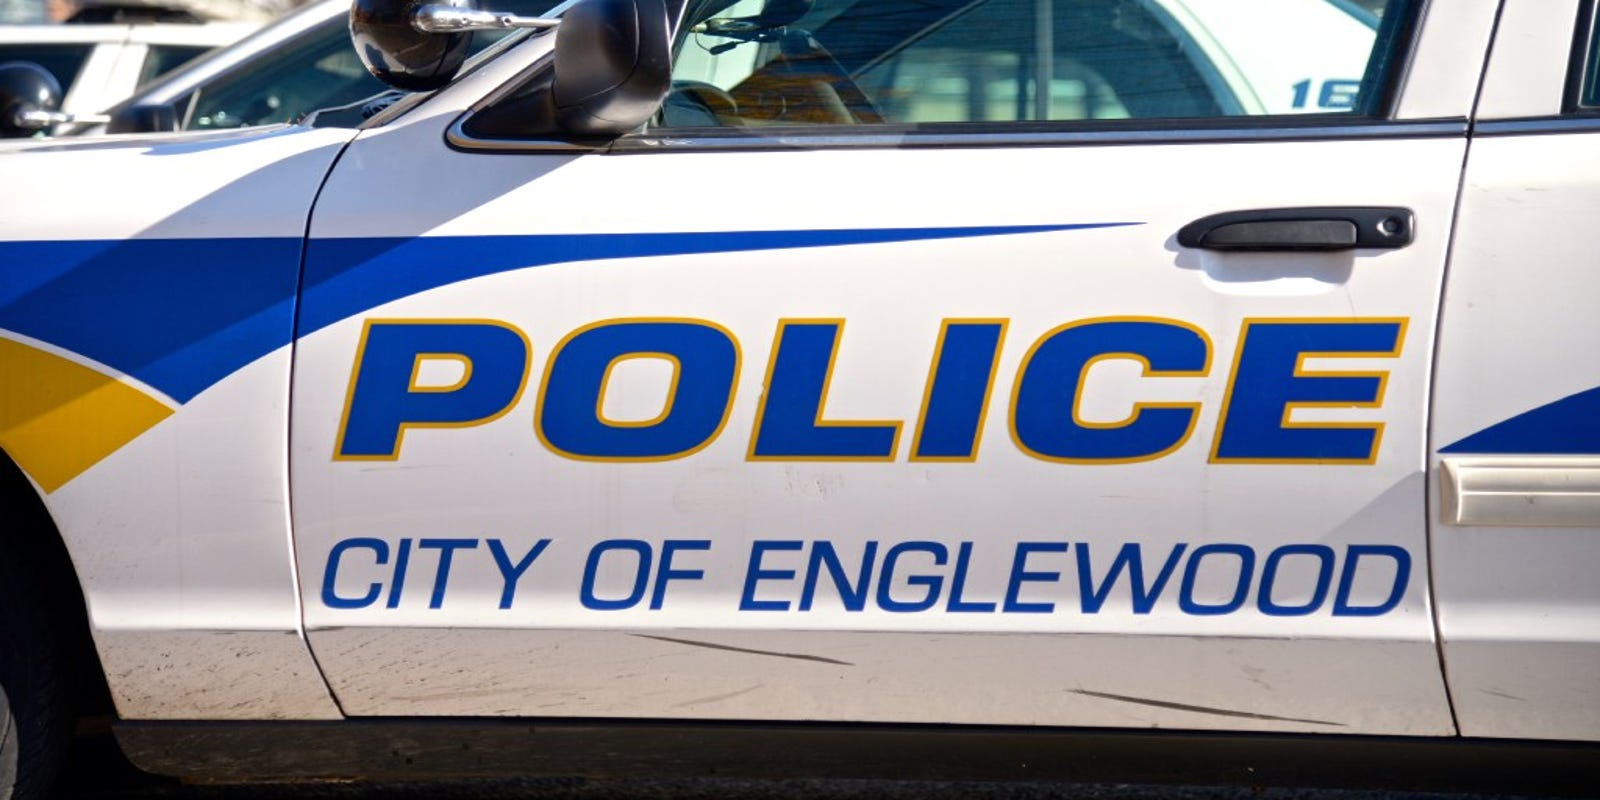 77-year-old woman struck in Englewood by 84-year-old driver